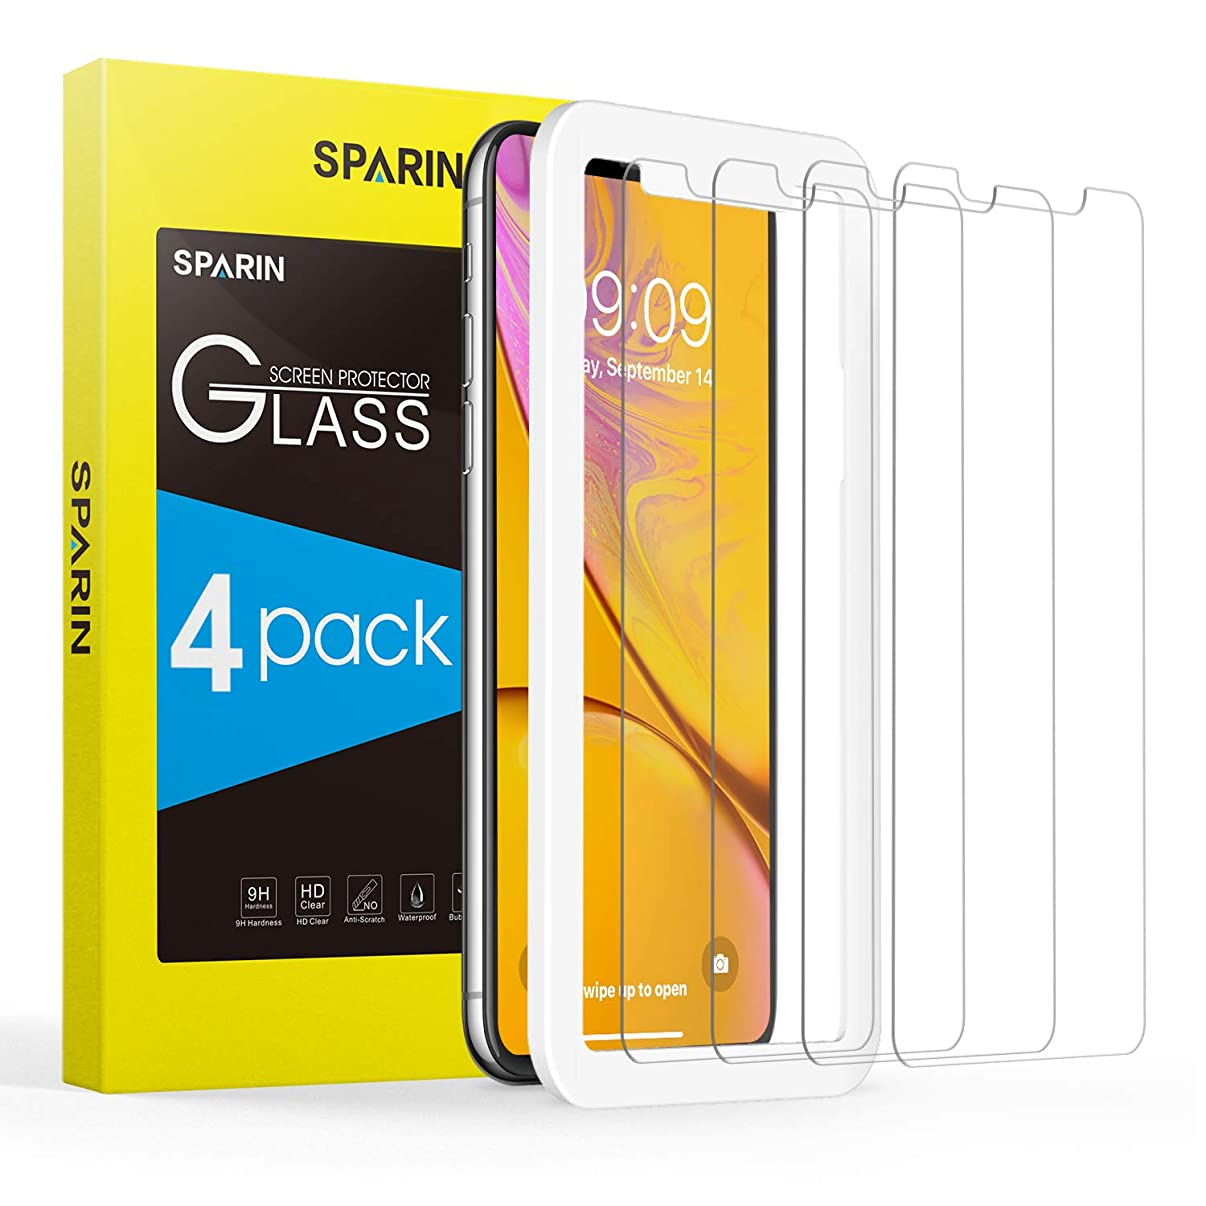 SPARIN Screen Protector for iPhone XR, [4 Pack] Tempered Glass Screen Protector for iPhone XR (6.1 Inch,2018 Release) - Alignment Frame/High Definition/Scratch Resistant